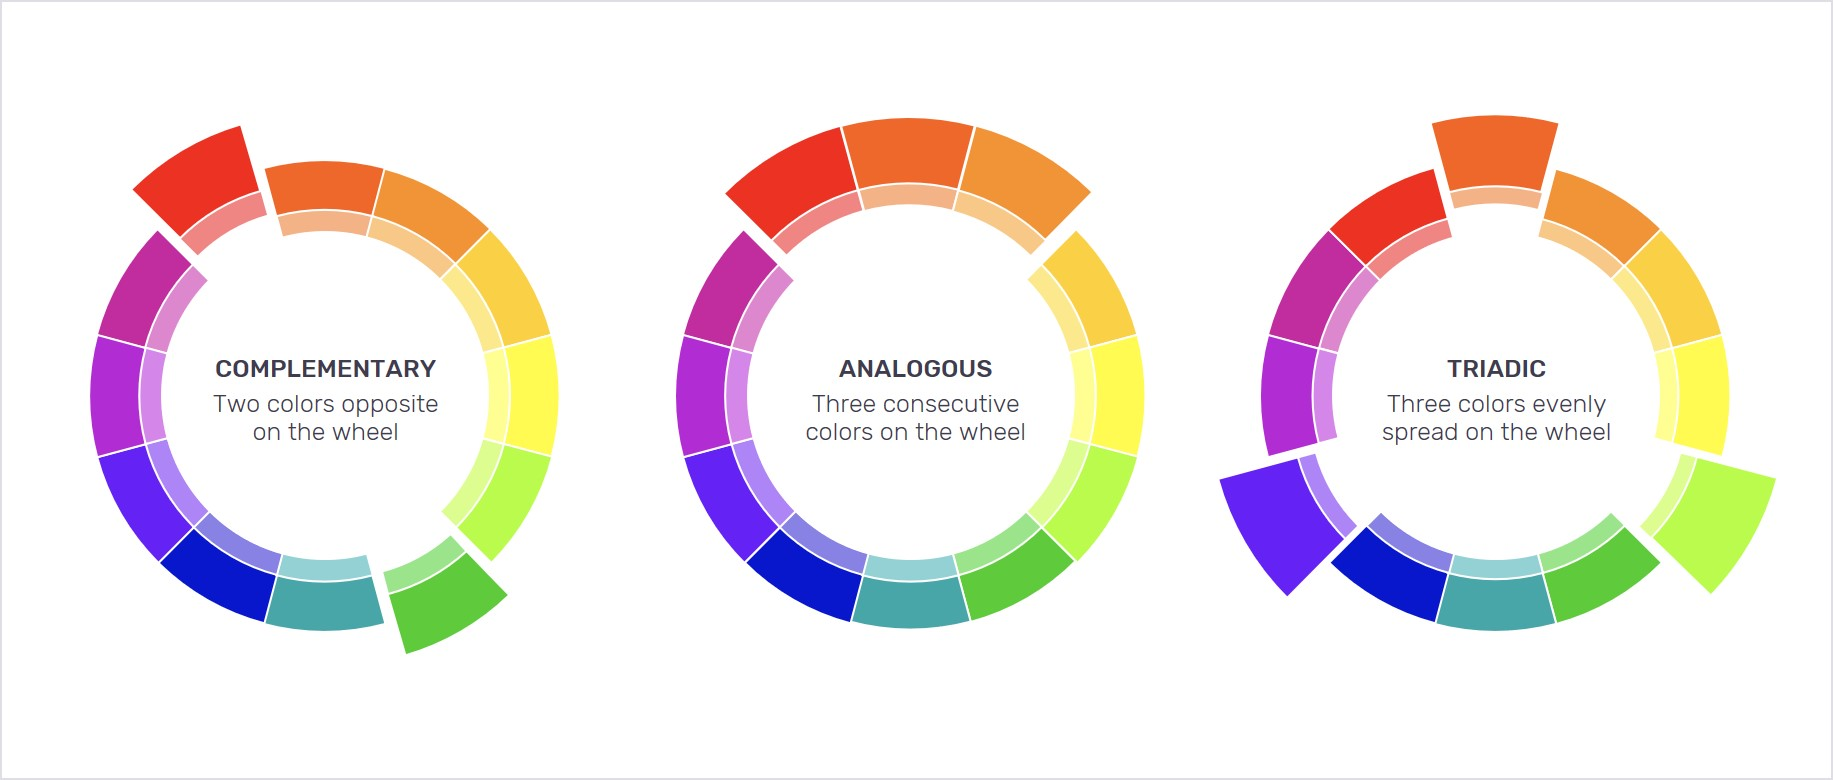 Complementary, analogous, and triadic colors on the color wheel